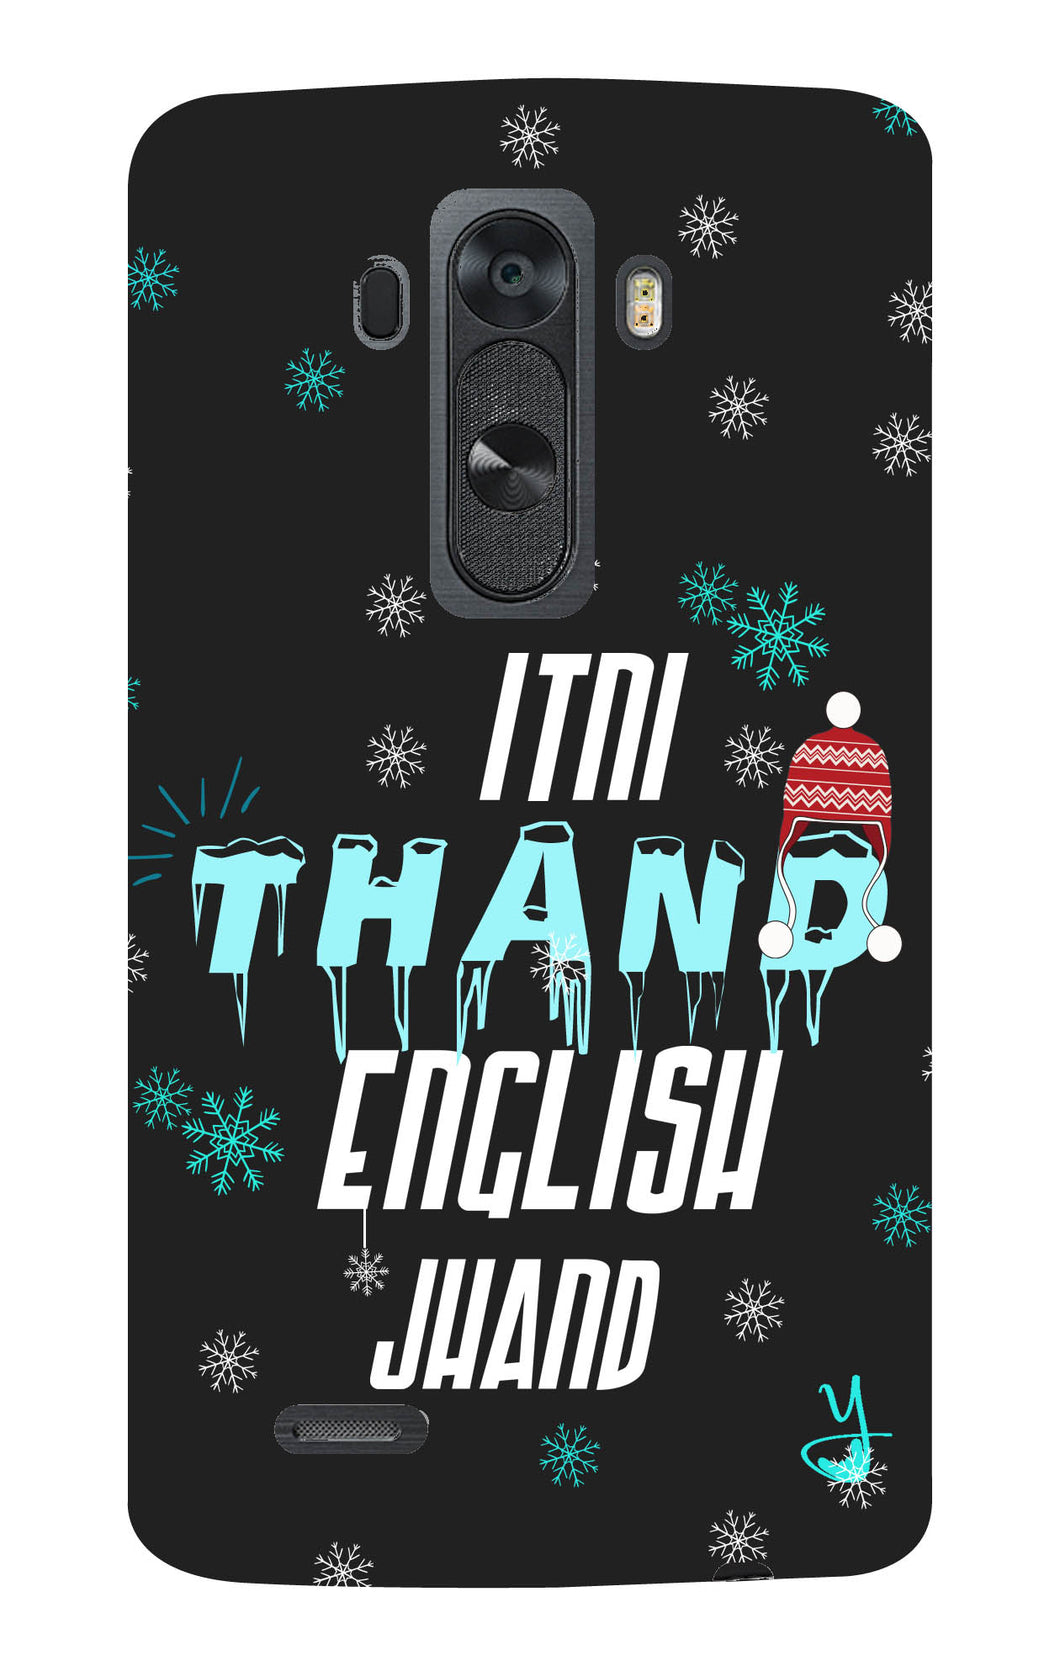 Itni Thand edition for lg g4